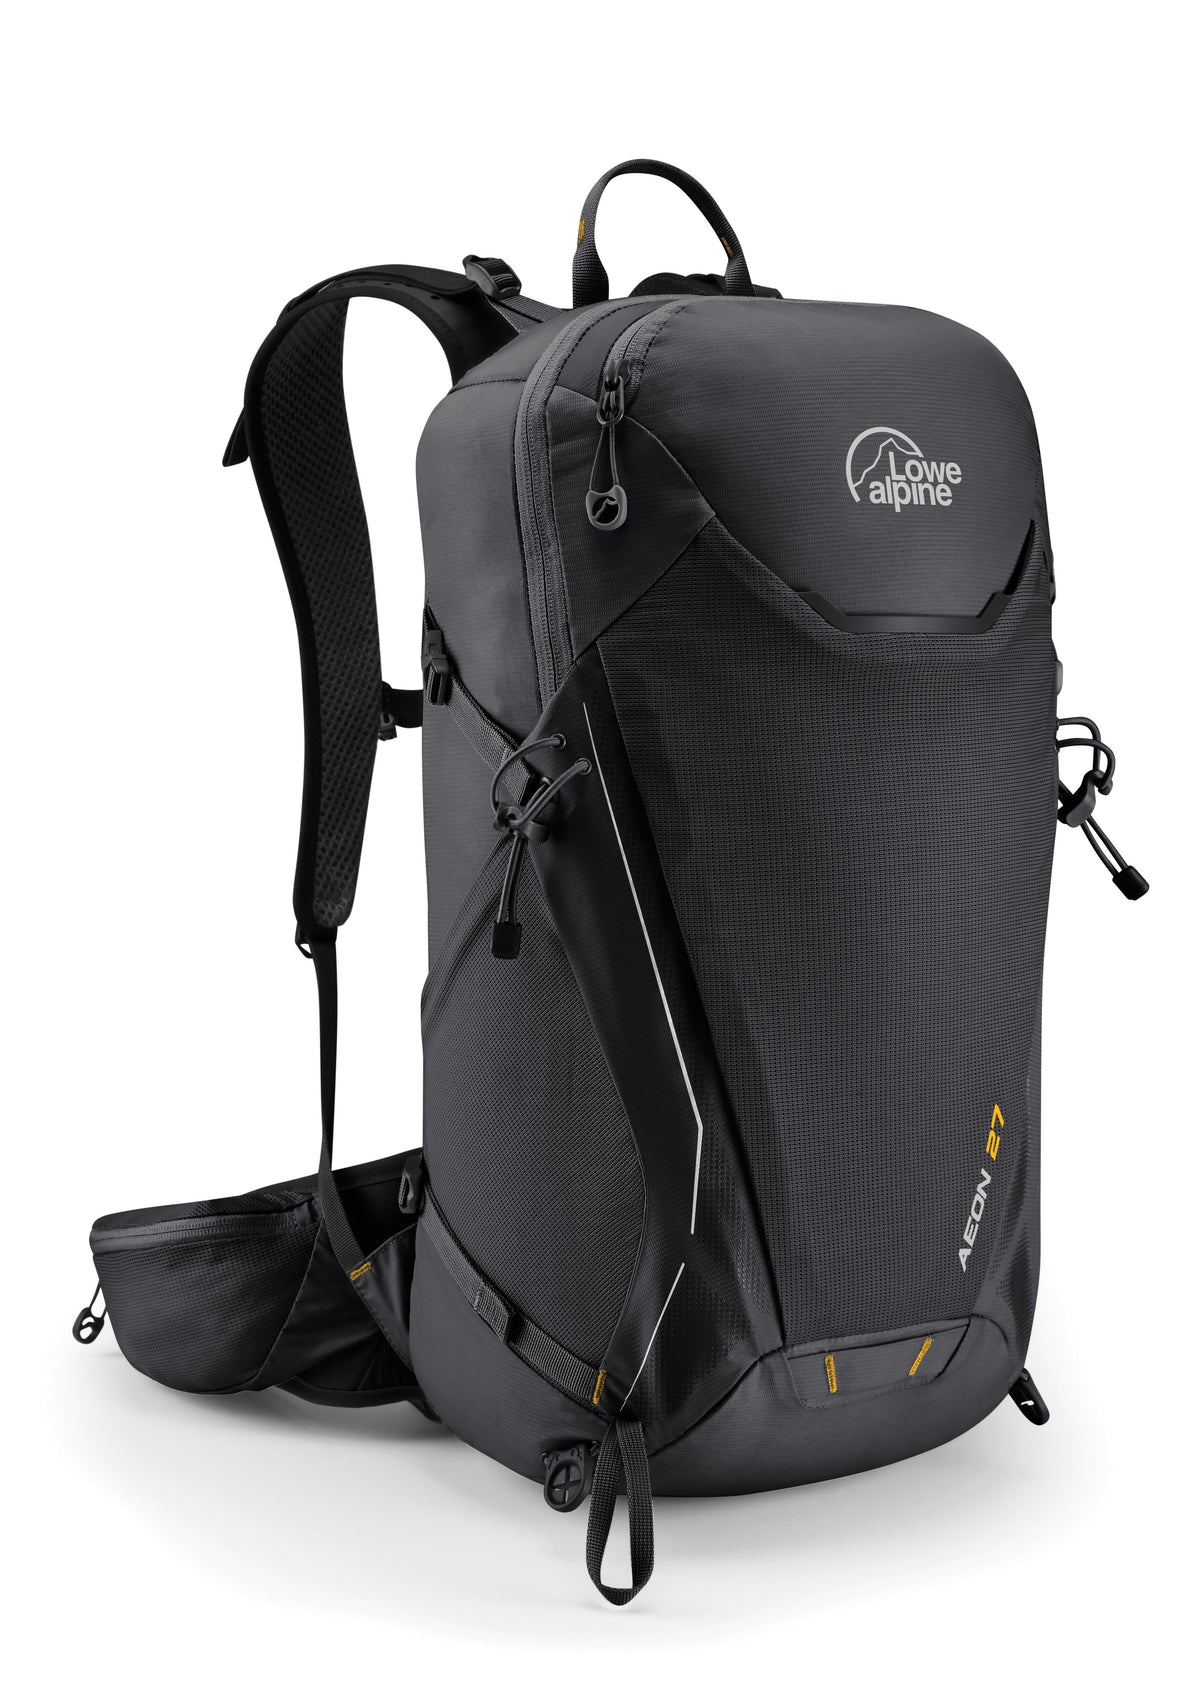 Lowe Alpine-Aeon 27-Backpacking Pack-Anthracite-Gearaholic.com.sg